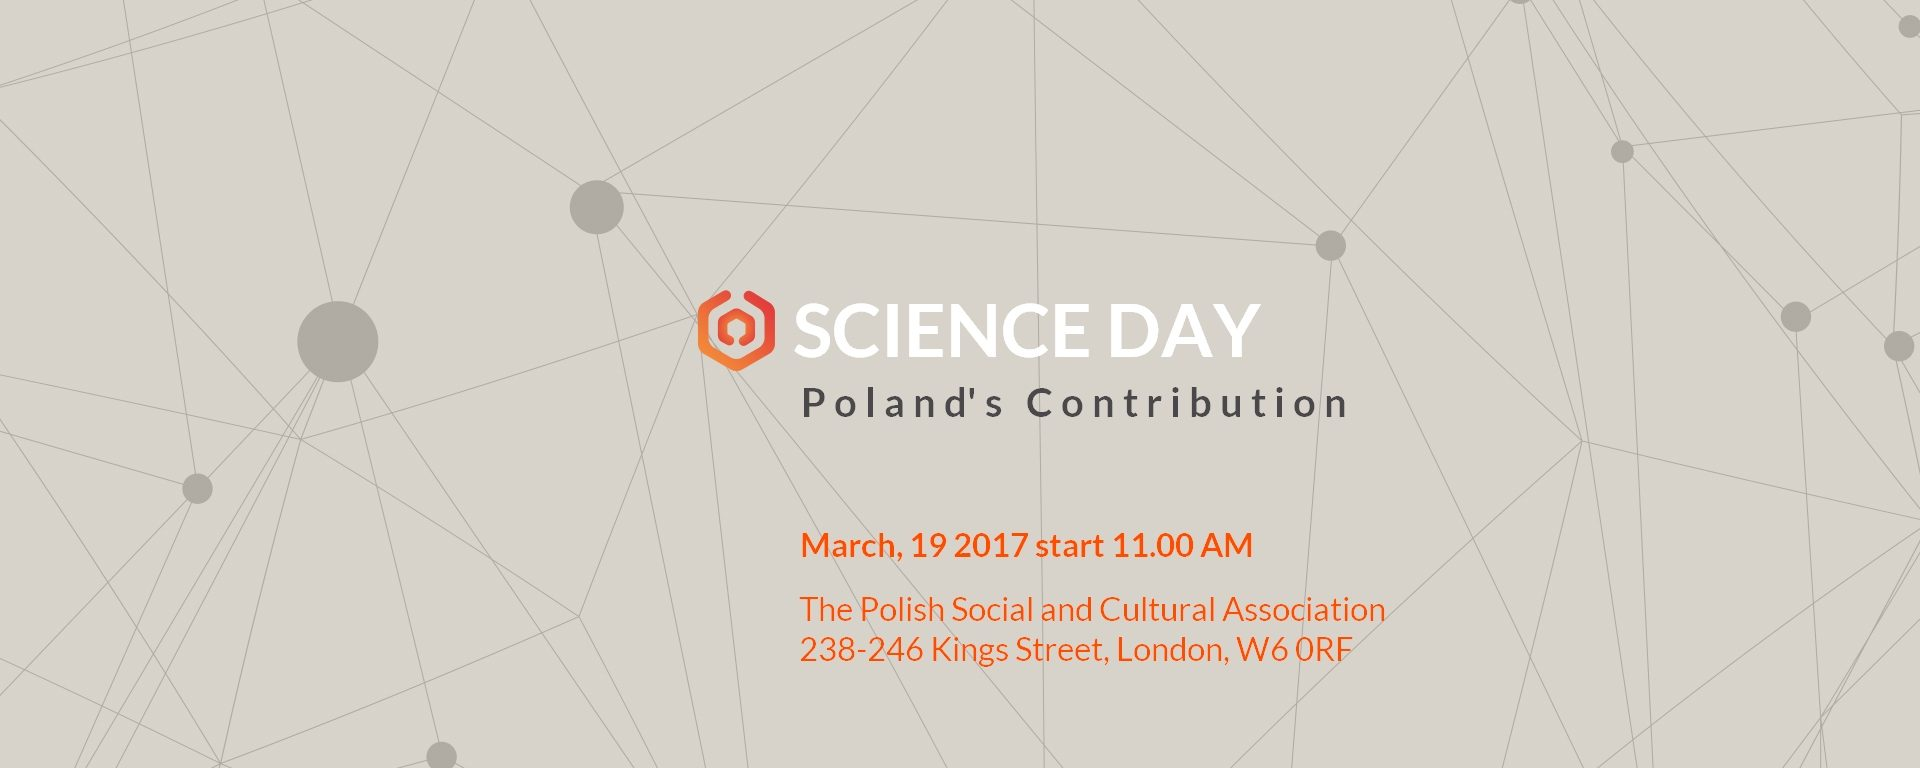 Science Day: Poland's Contribution